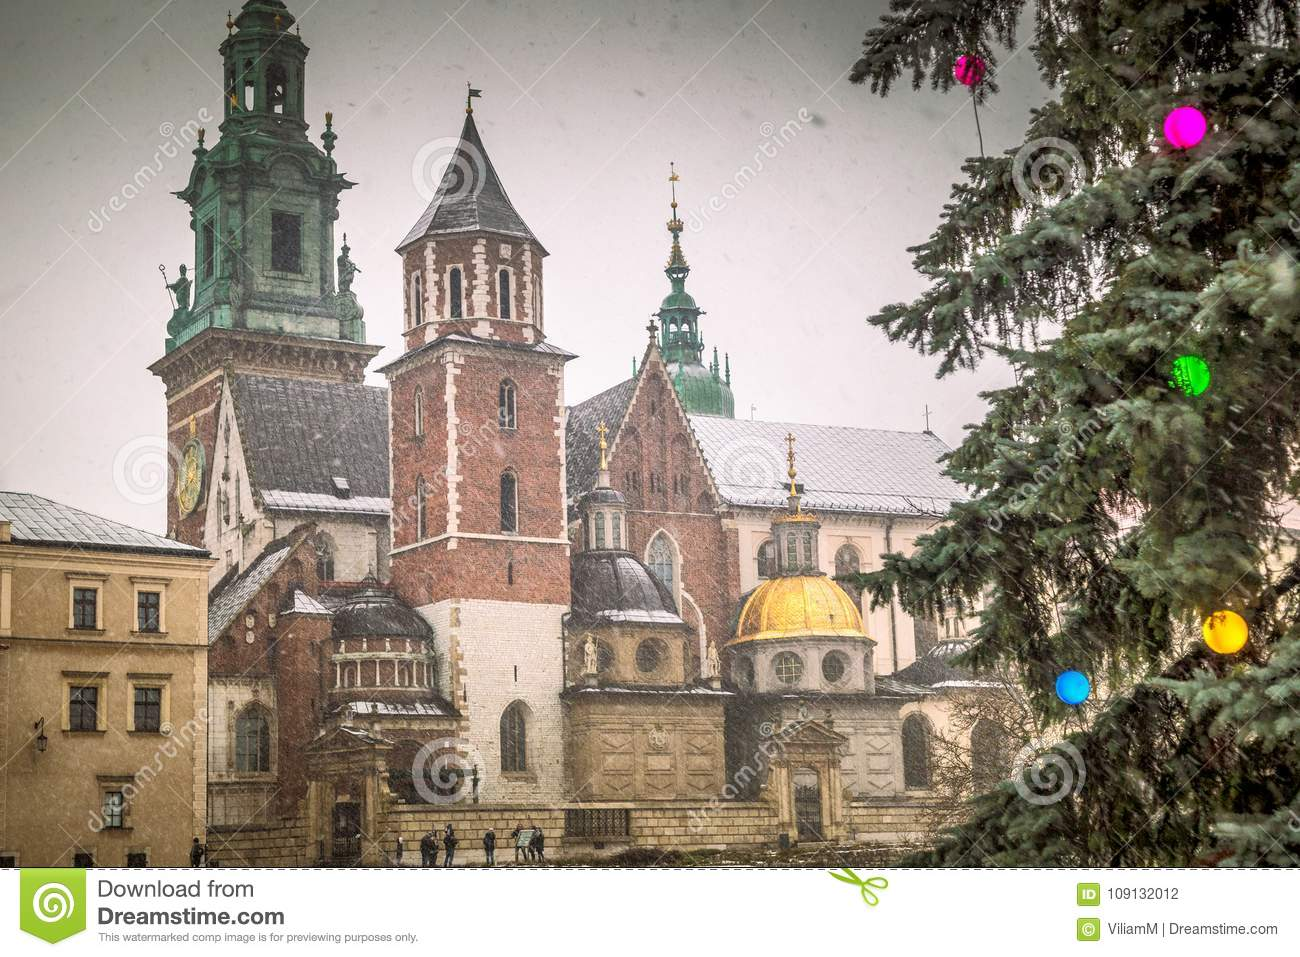 The Wawel Cathedral in Krakow during Christmas.